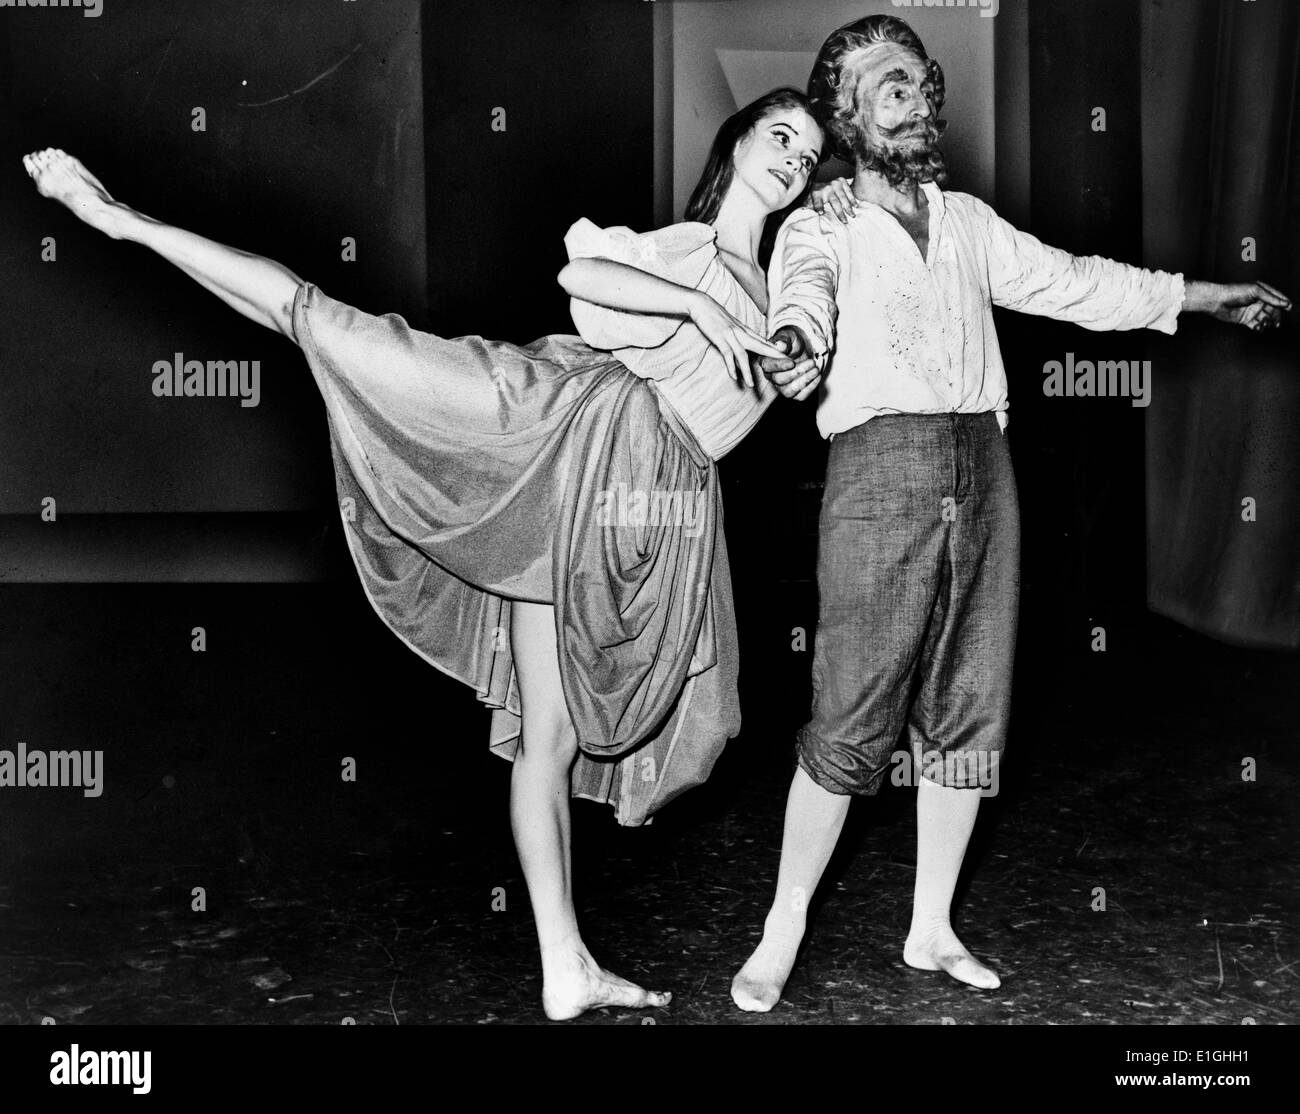 Suzanne Farrell and George Balanchine dancing in a segment of 'Don Quixote' at New York State Theater 1965 - Stock Image